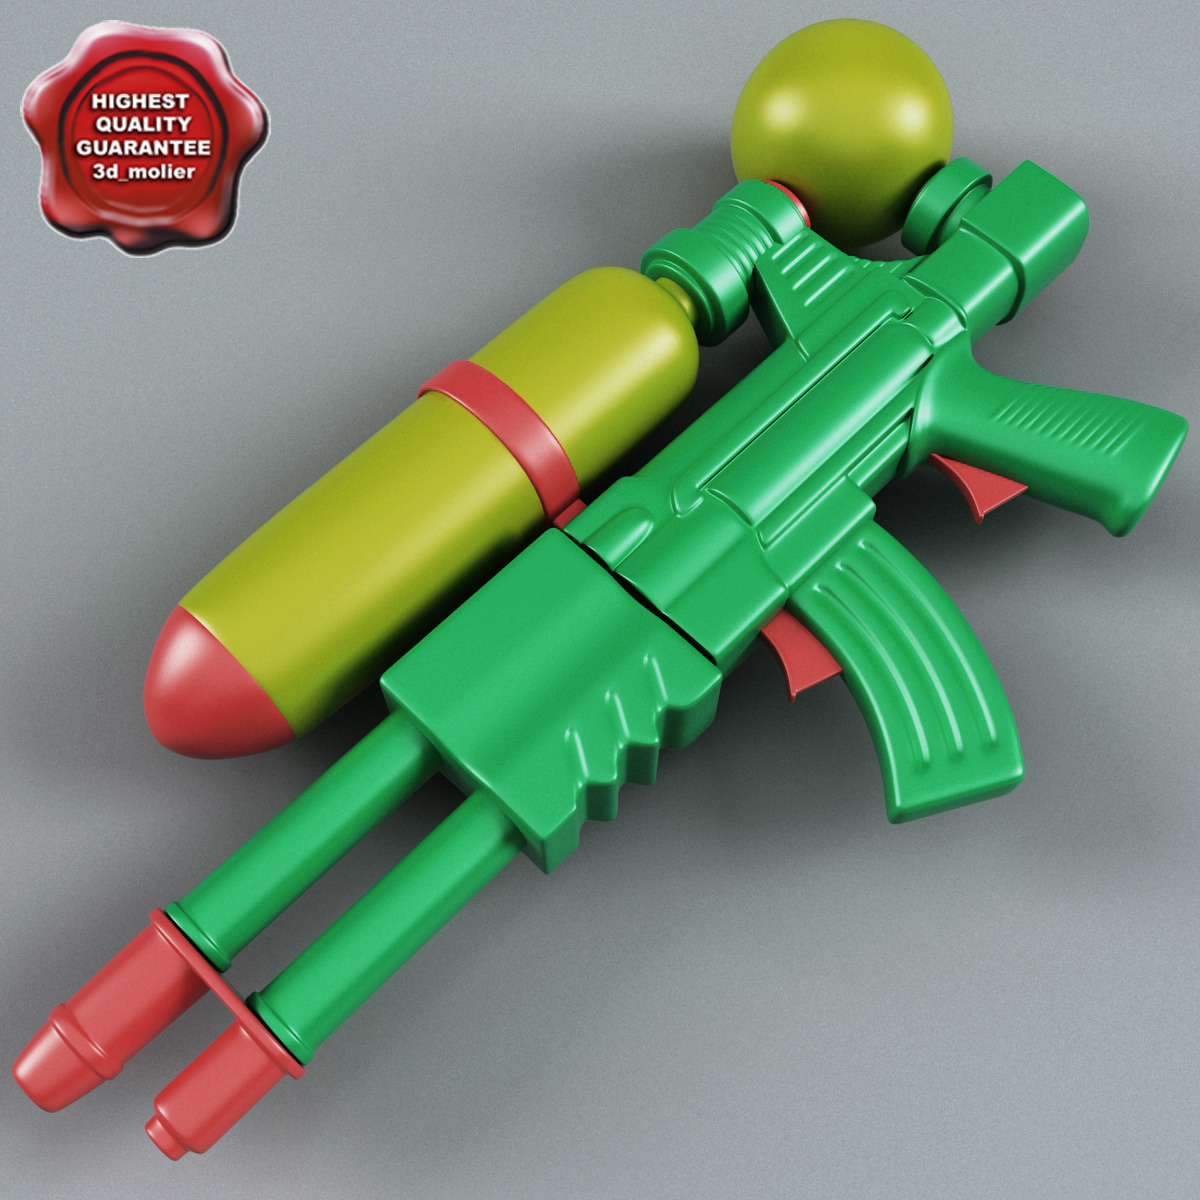 Big_Water_Gun_00.jpg